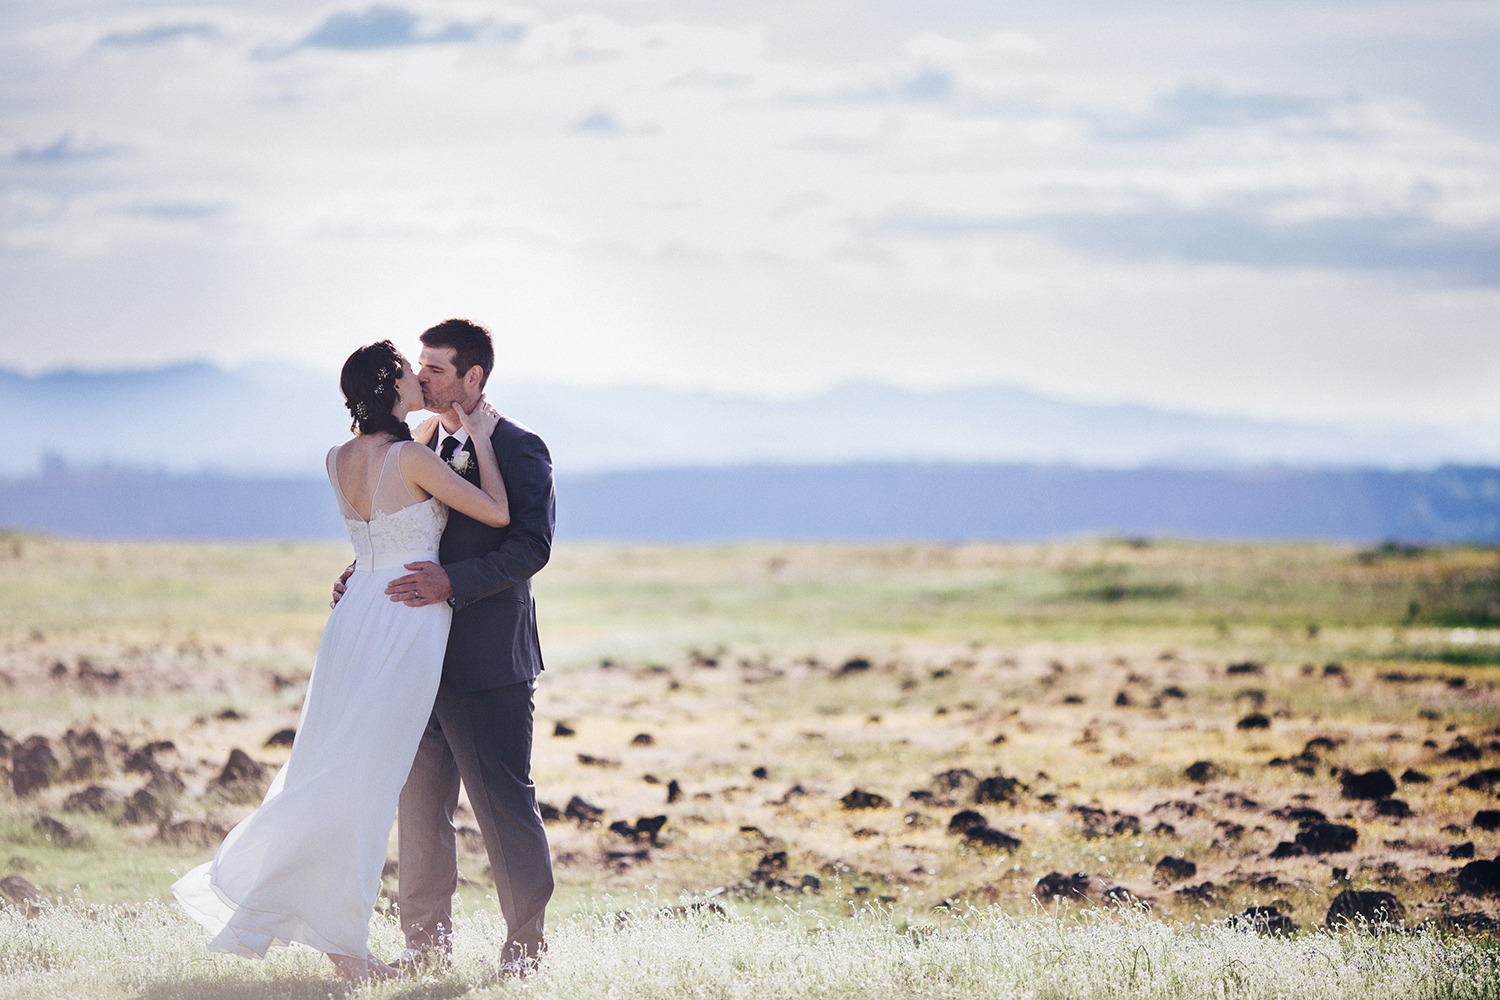 A Wedding on top of the World -http://www.cloudydayphoto.com/